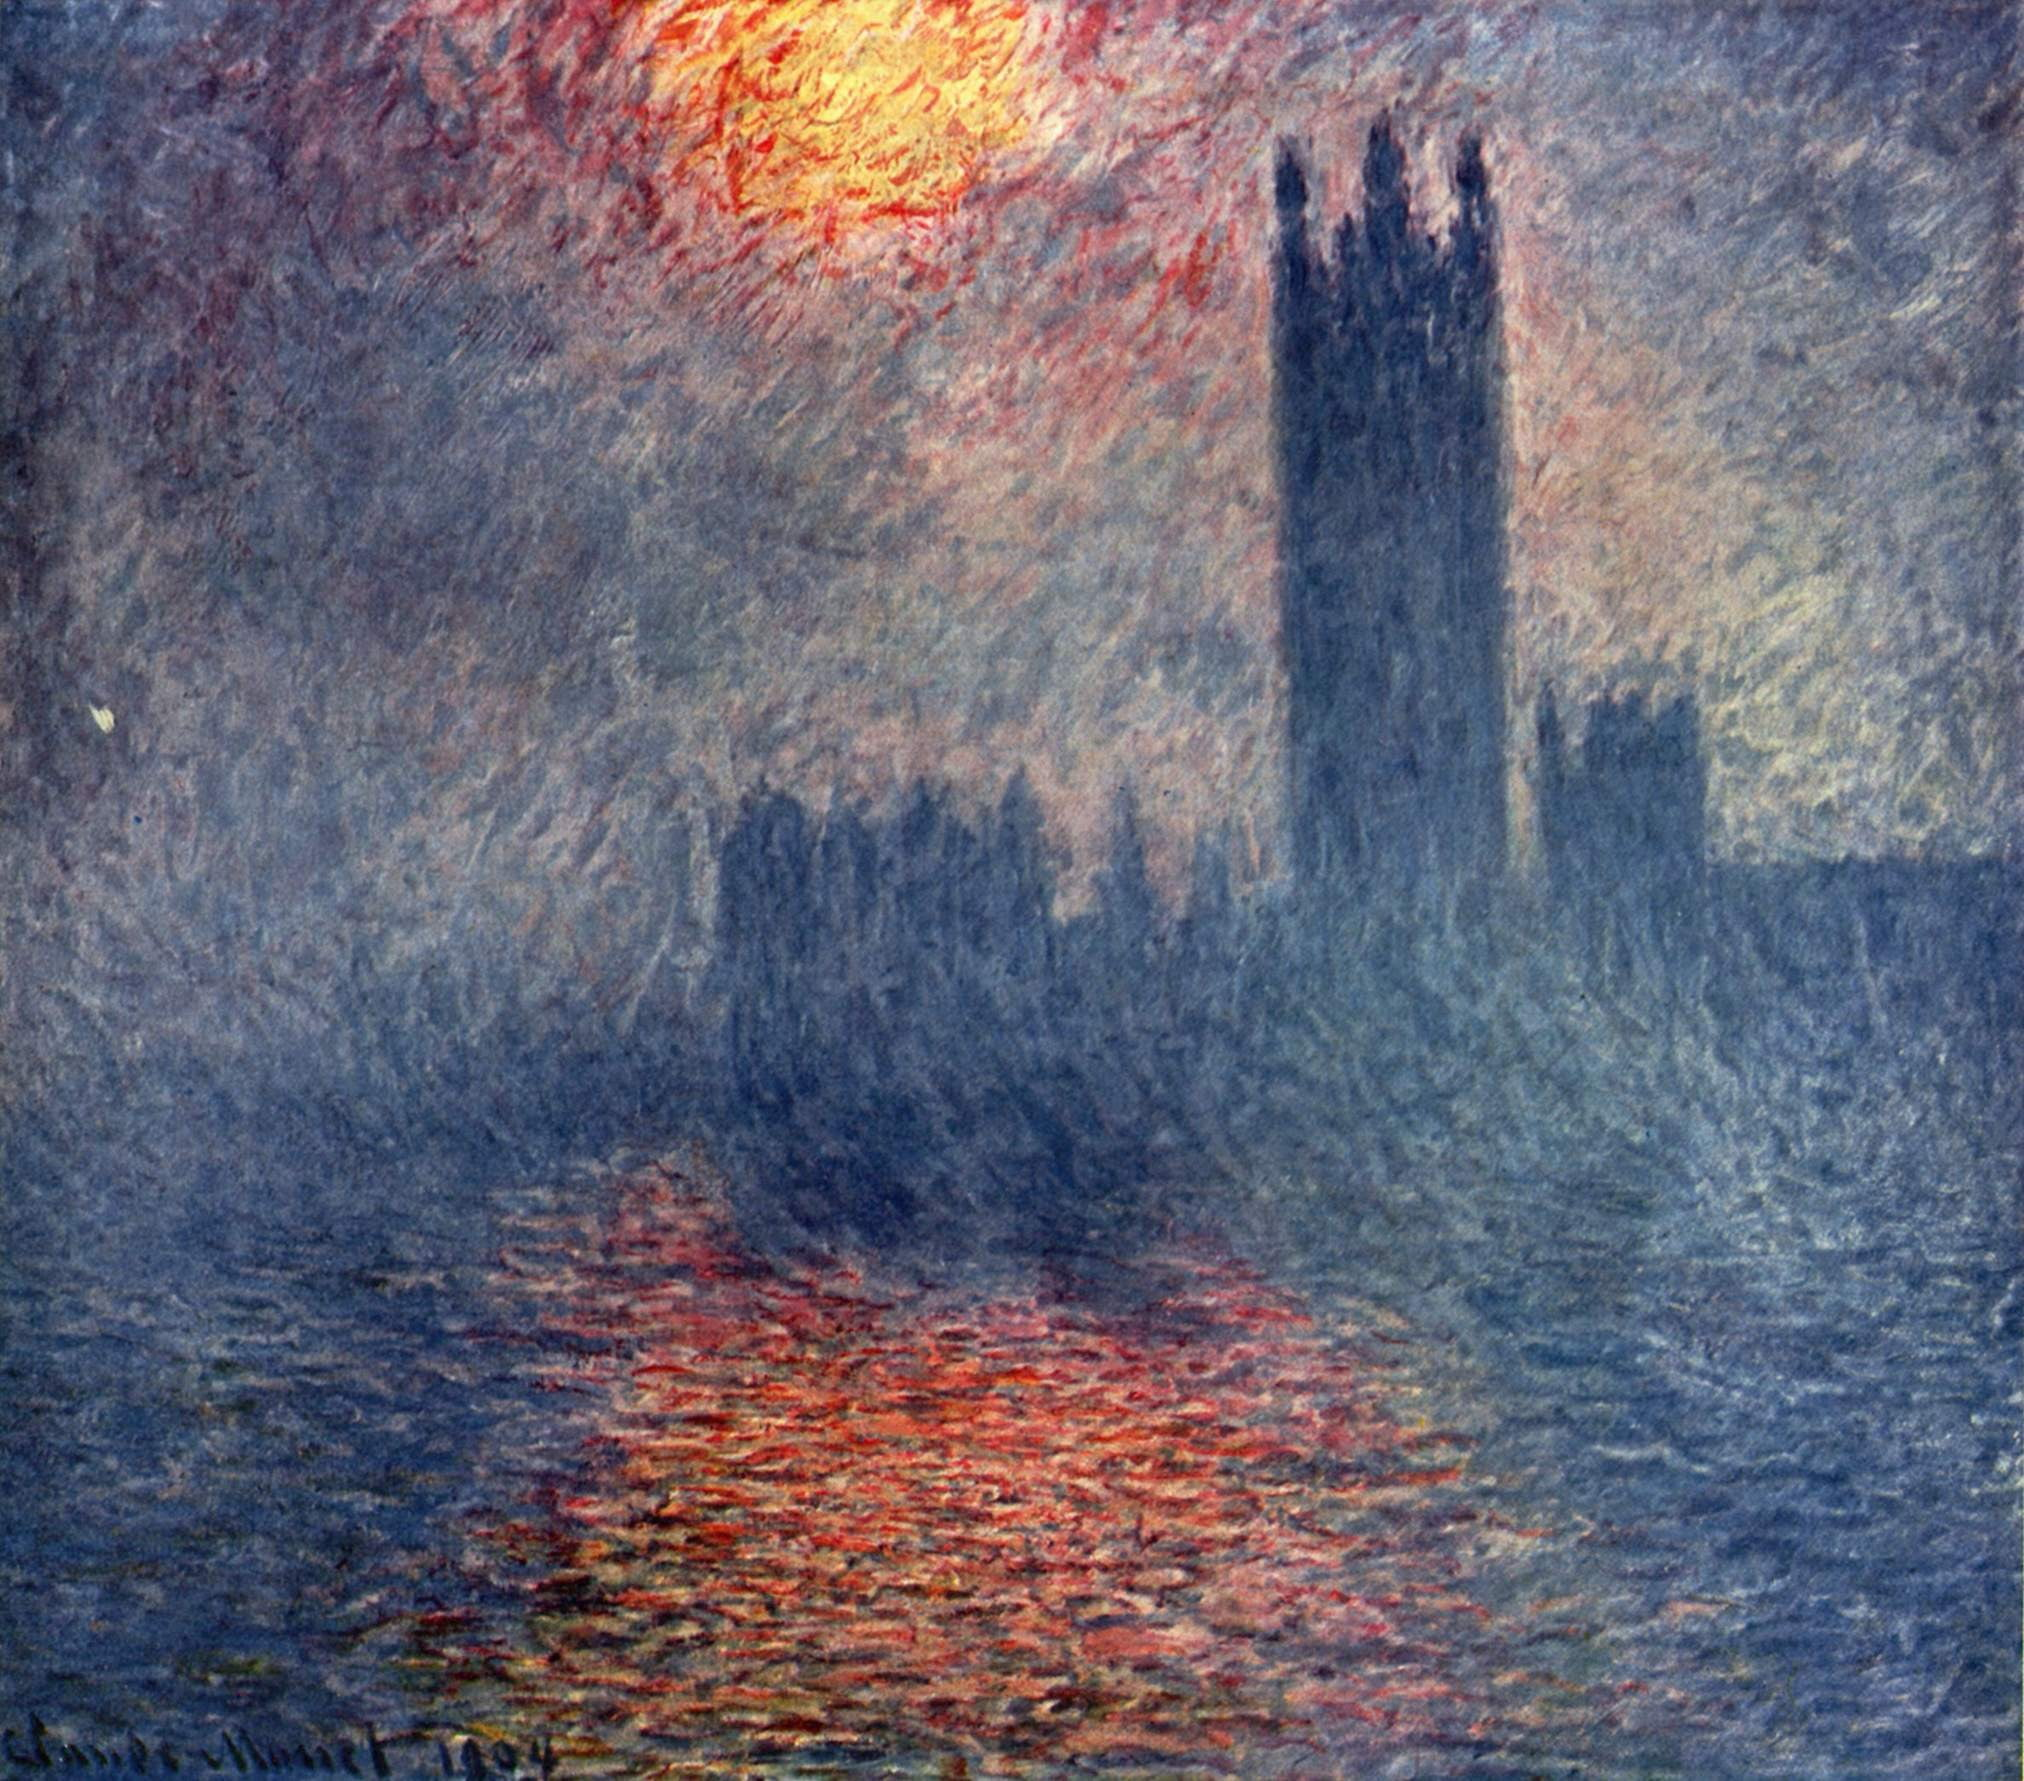 Untitled Claude Monet Painting Classic Art Sun Claude Monet